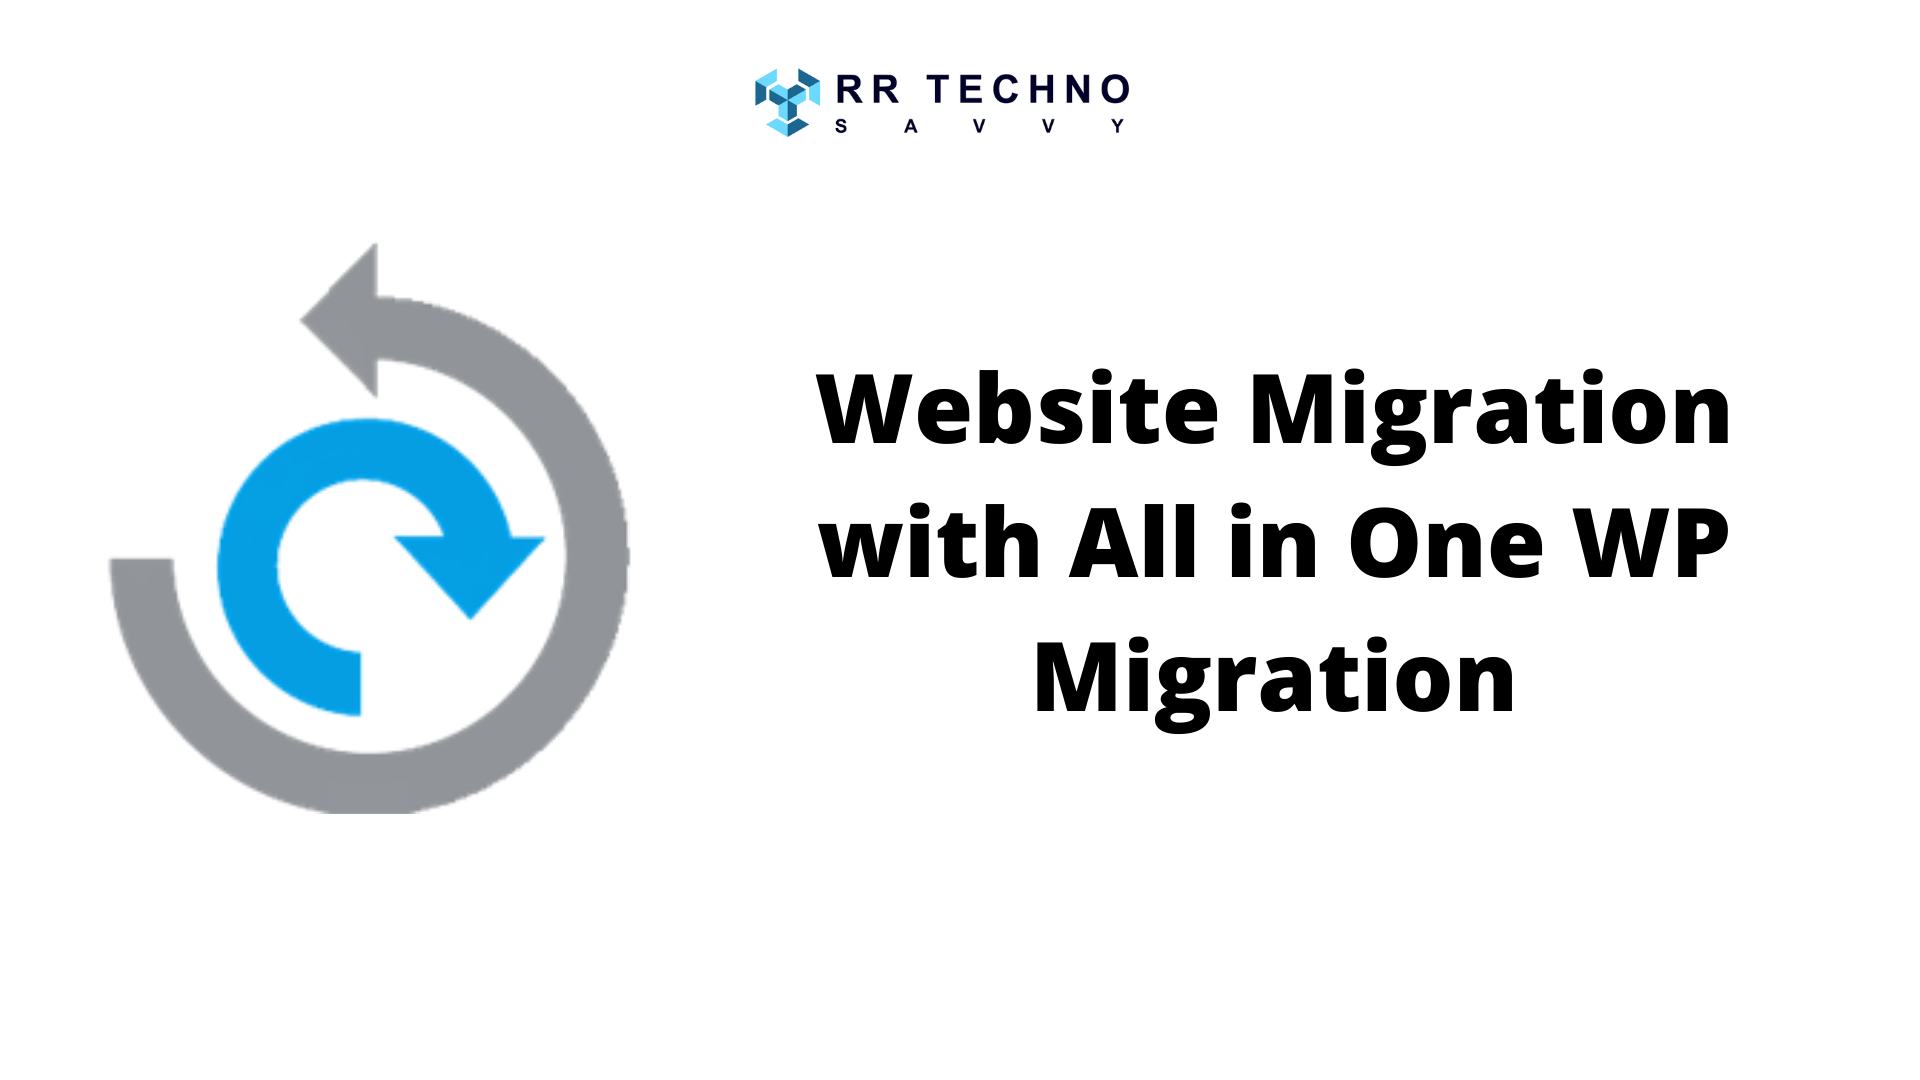 Migrate Wordpress Site to New Host with All in One WP Migration